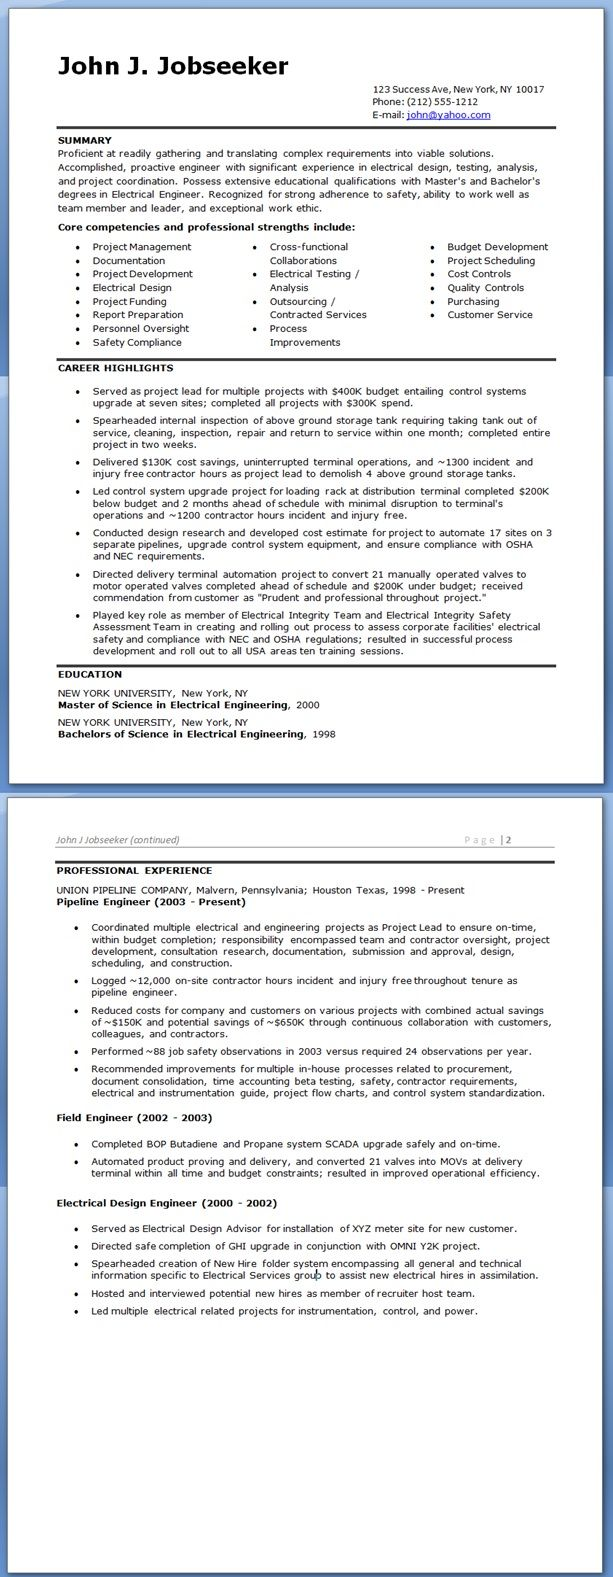 Electrical Engineer Resume Sample Doc (Experienced) | Linkedin ...